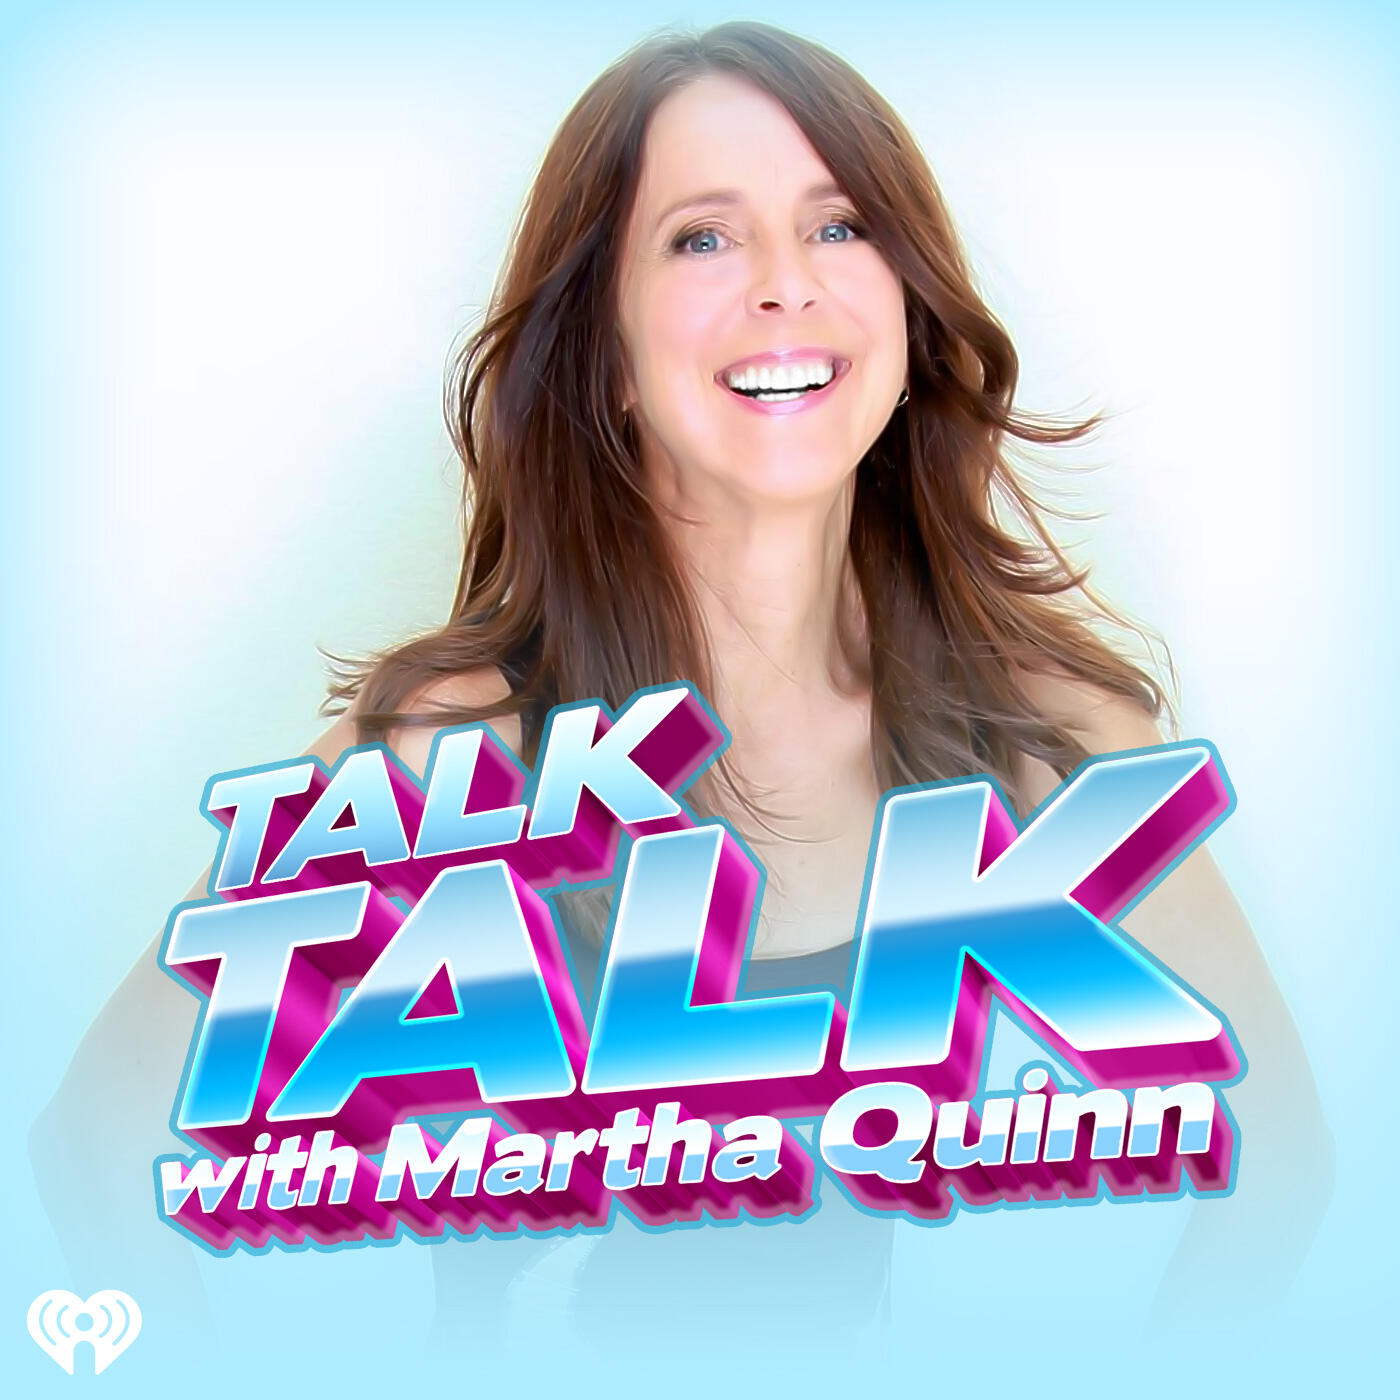 Listen to the Talk Talk With Martha Quinn Episode - Episode 93-Karena's Neighborhood Watch on iHeartRadio | iHeartRadio